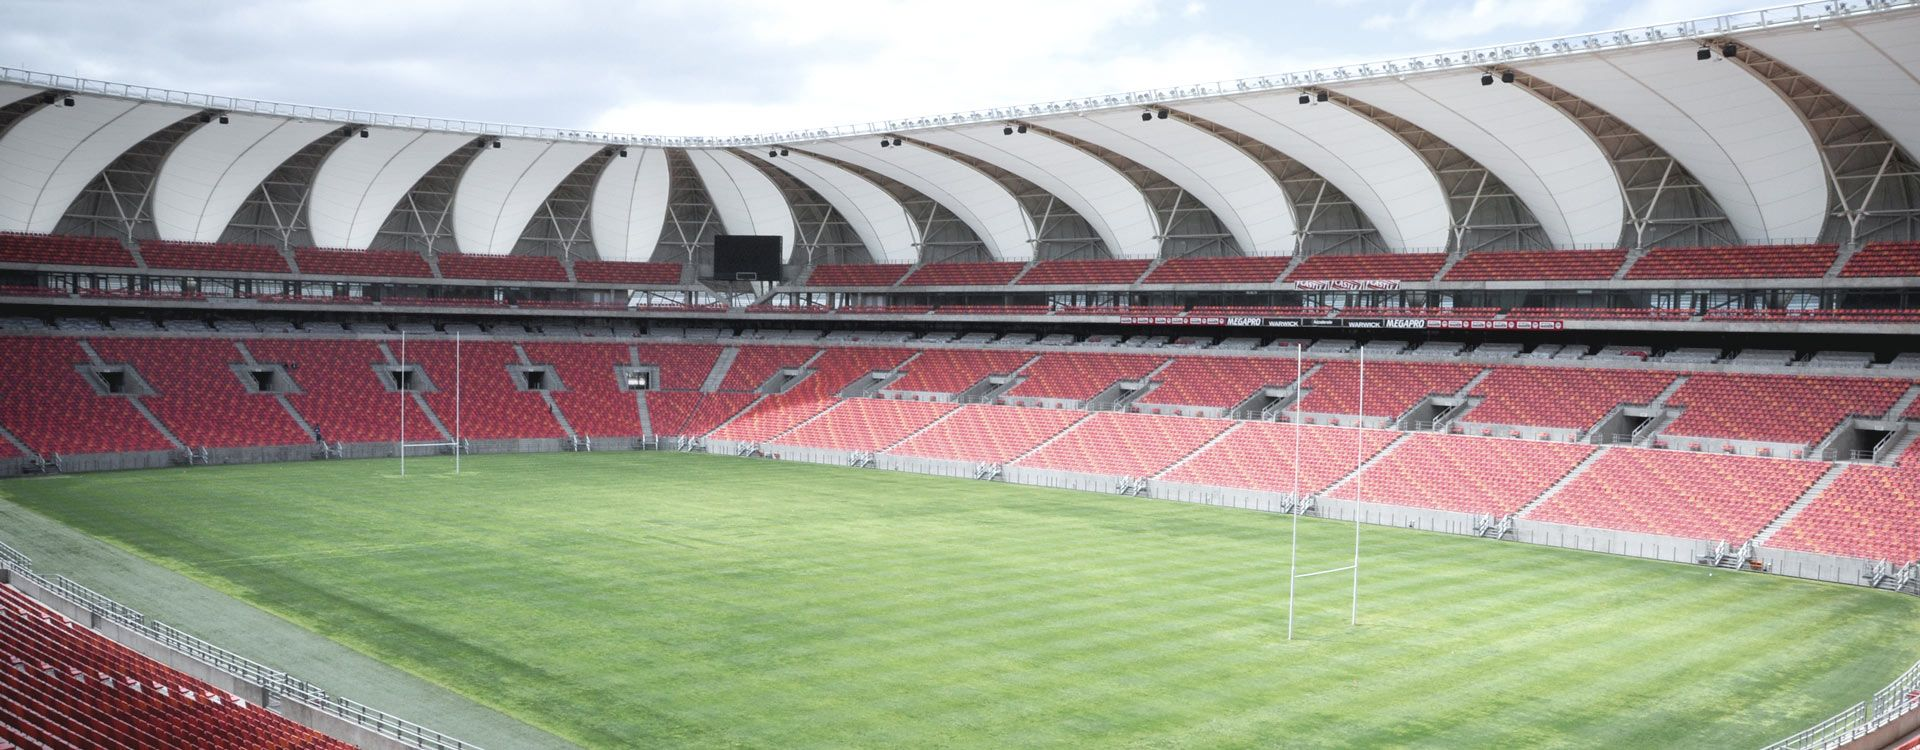 bnr-Nelson-Mandela-Bay-Stadium_Sports-and-Stadia